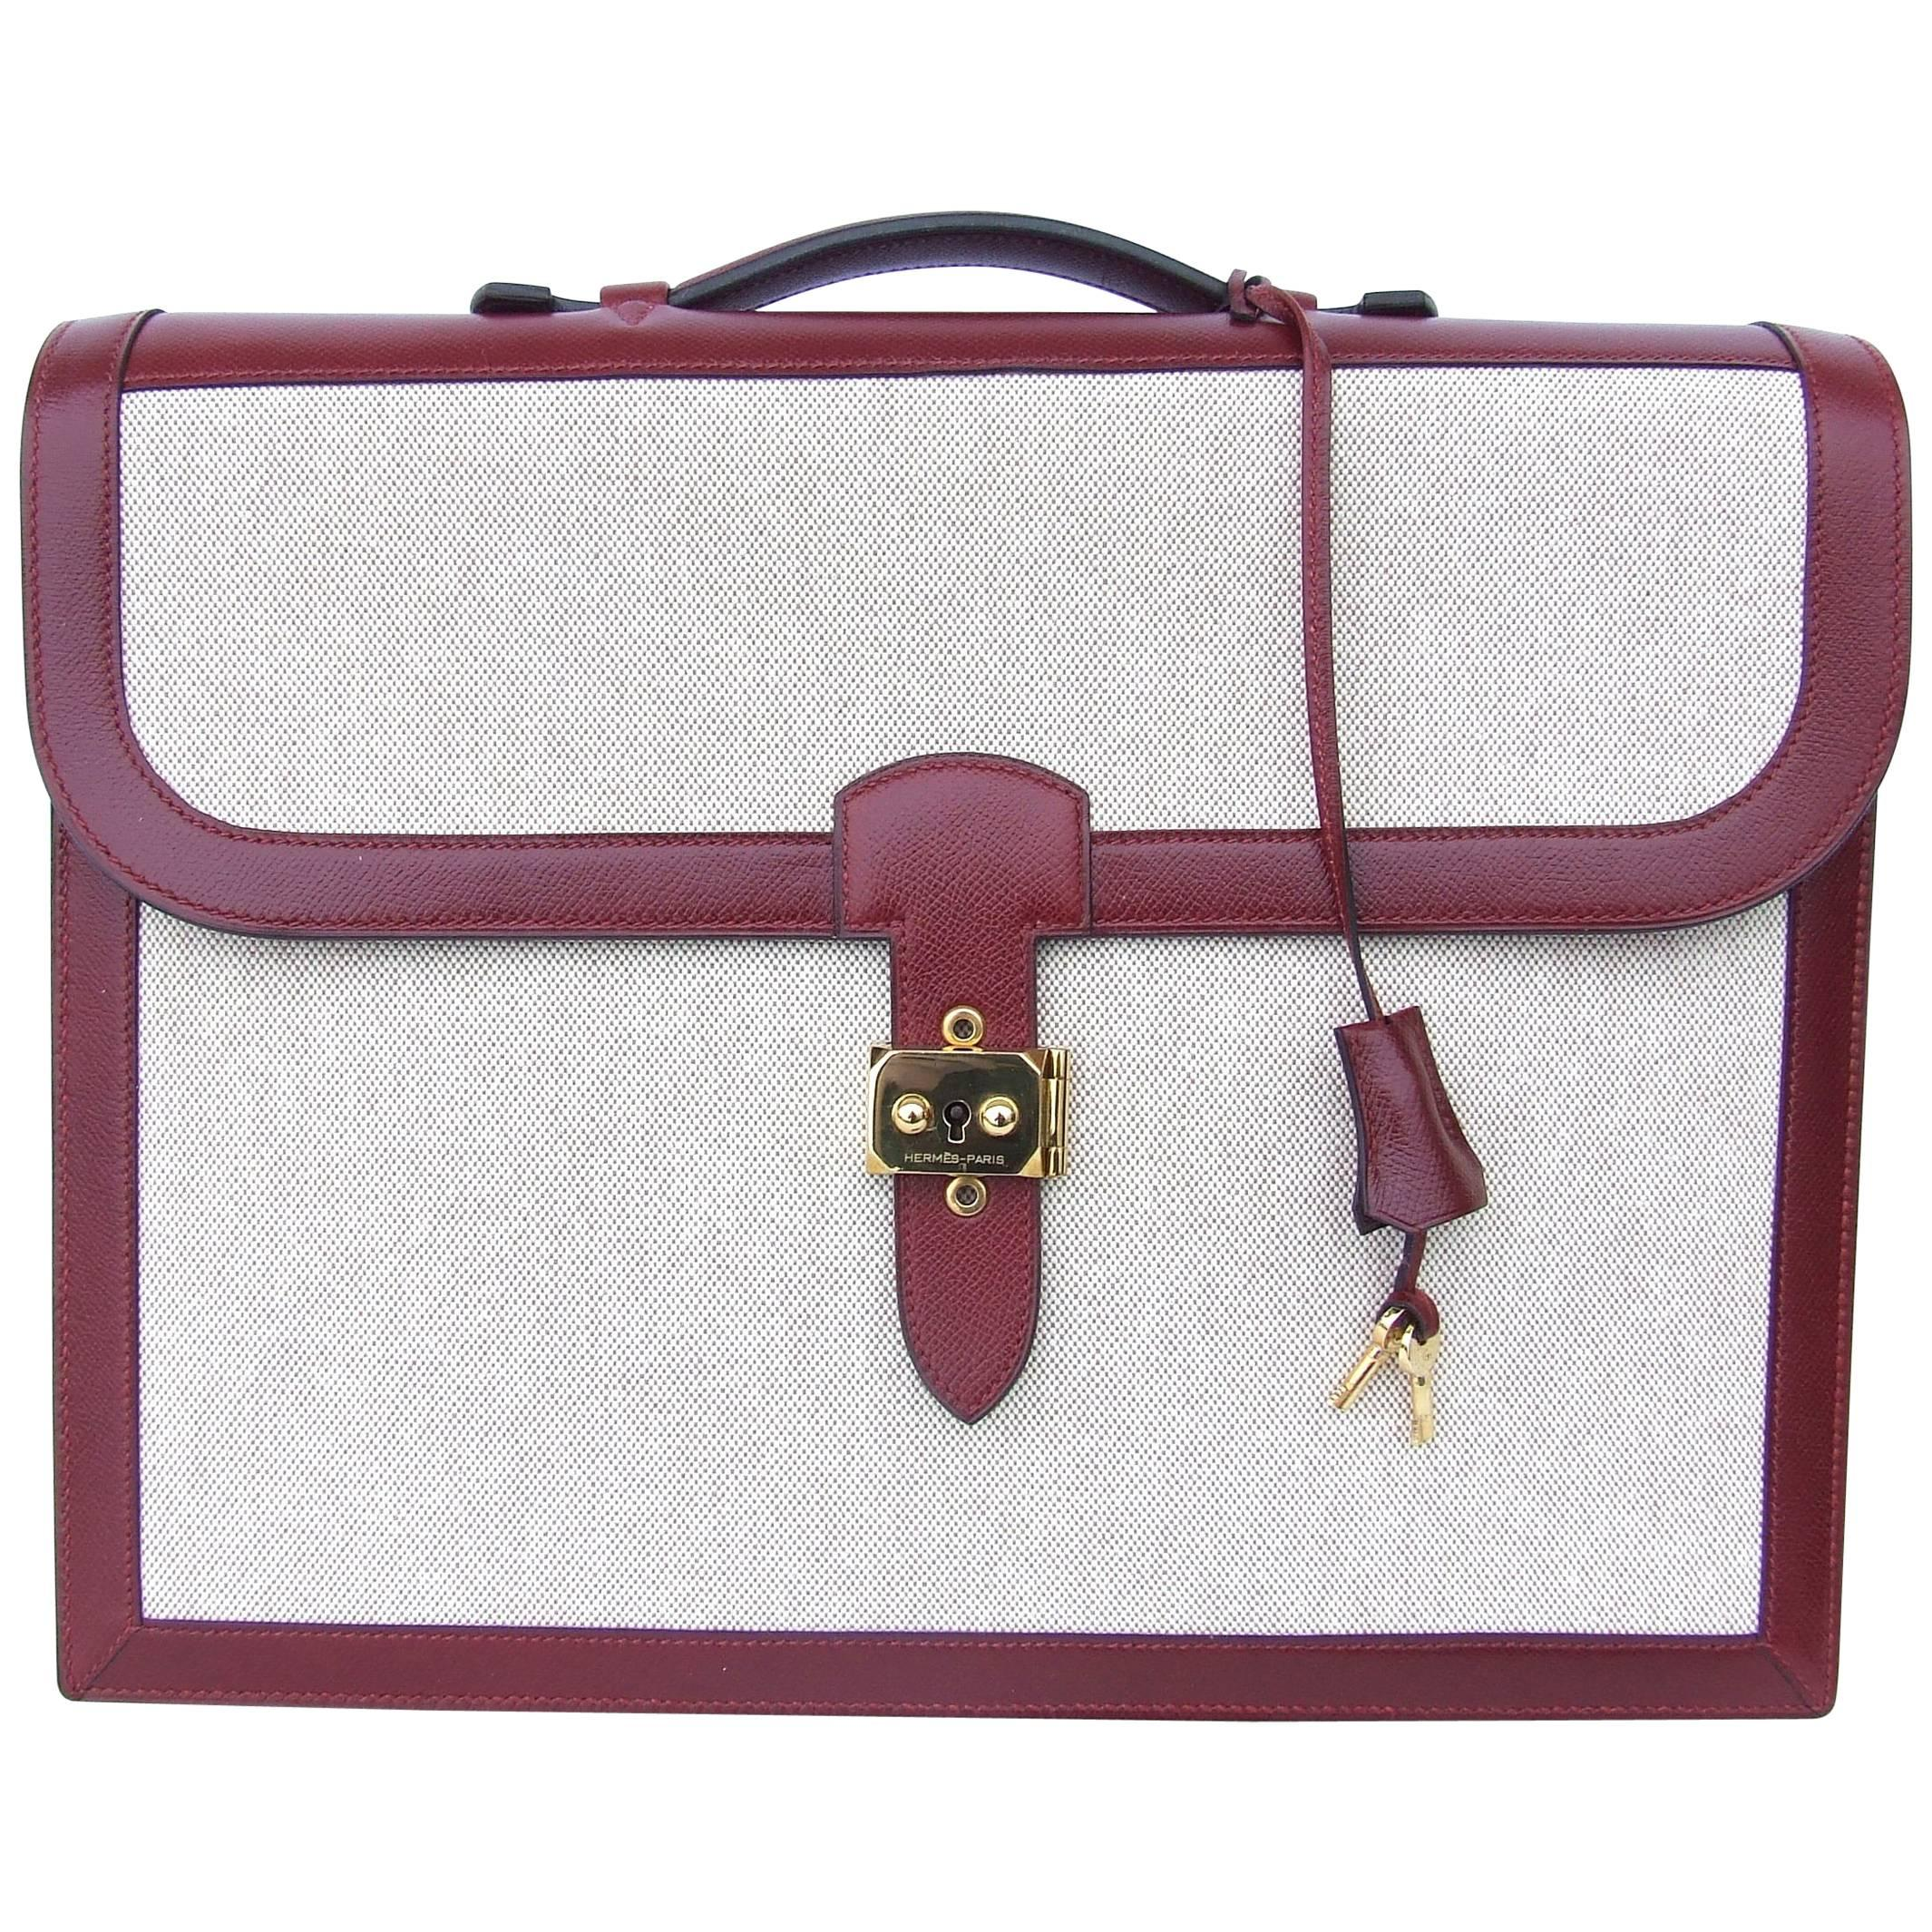 cdf9c095360a Hermès Vintage Mini Kelly Bag Sellier White Leather Gold Hdw 20 cm RARE For  Sale at 1stdibs